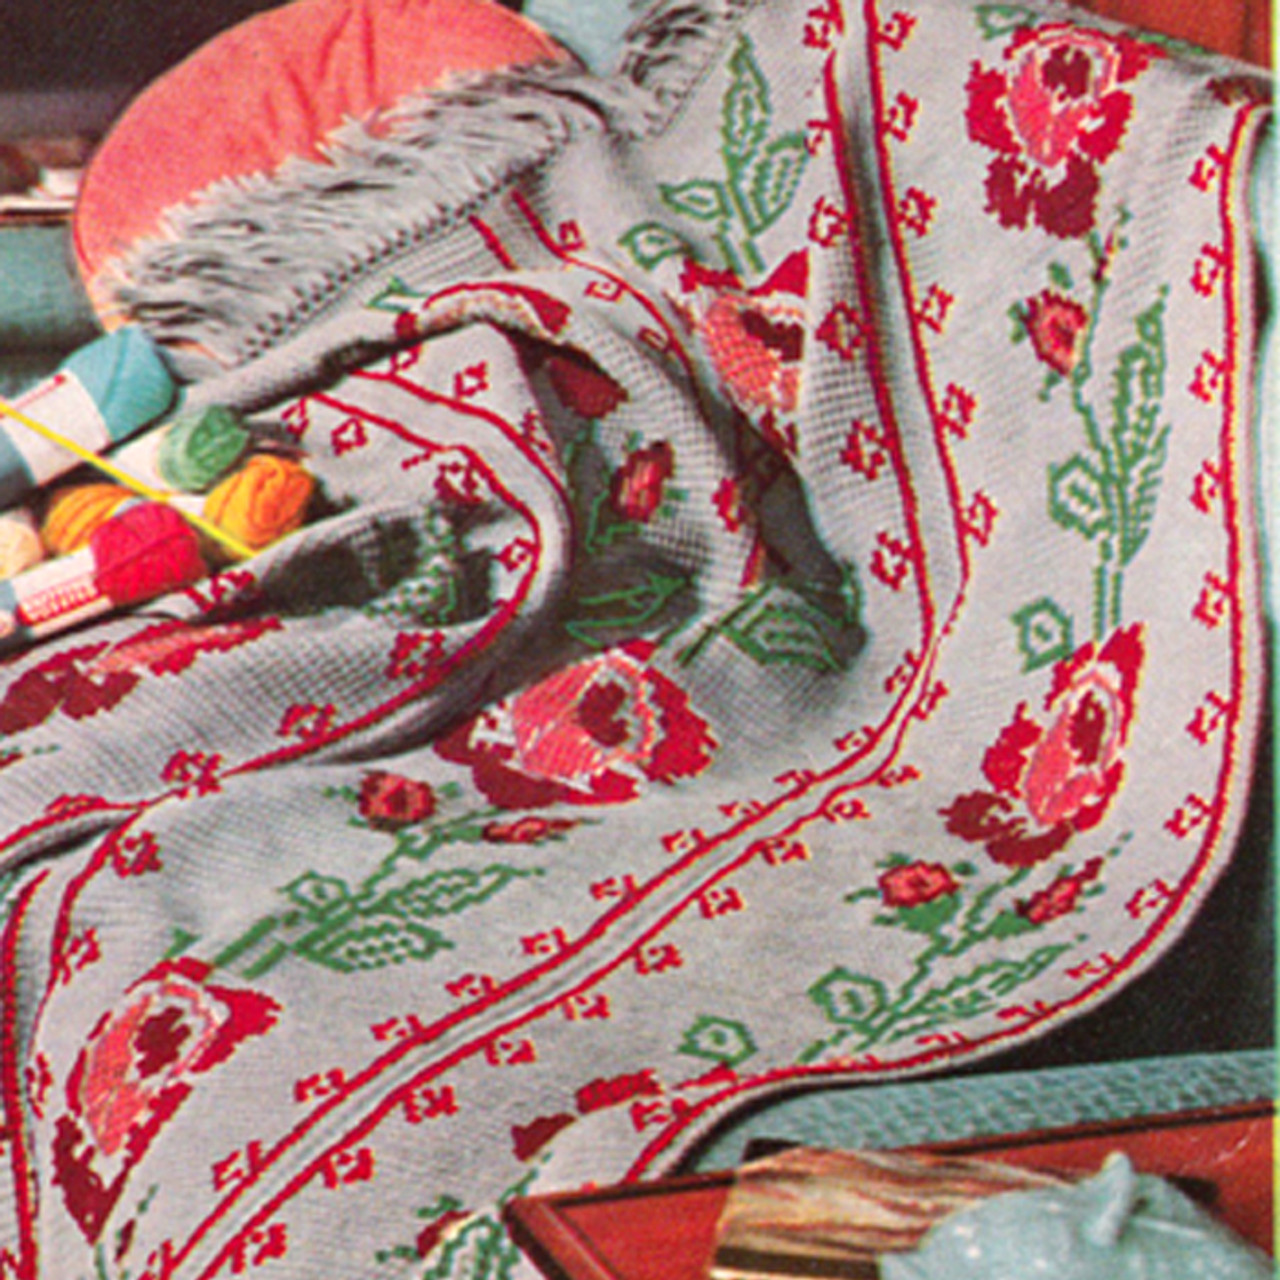 Vintage Rose Heirloom Crochet Afghan with Embroidery